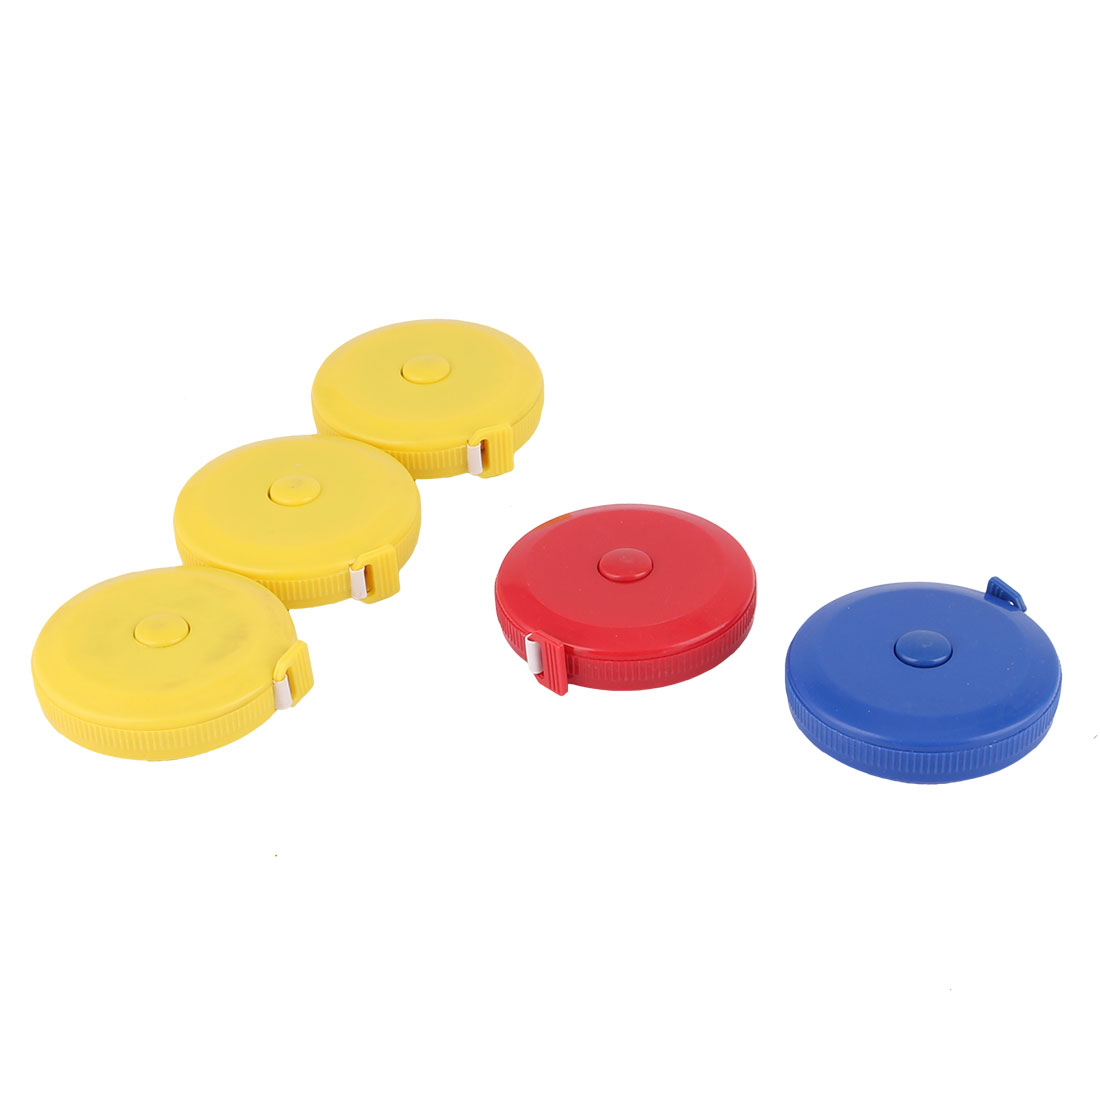 Tailor Engineer Plastic Shell Double Sided Press Button Retractable Tape Measure 150cm 60 Inch 5 PCS